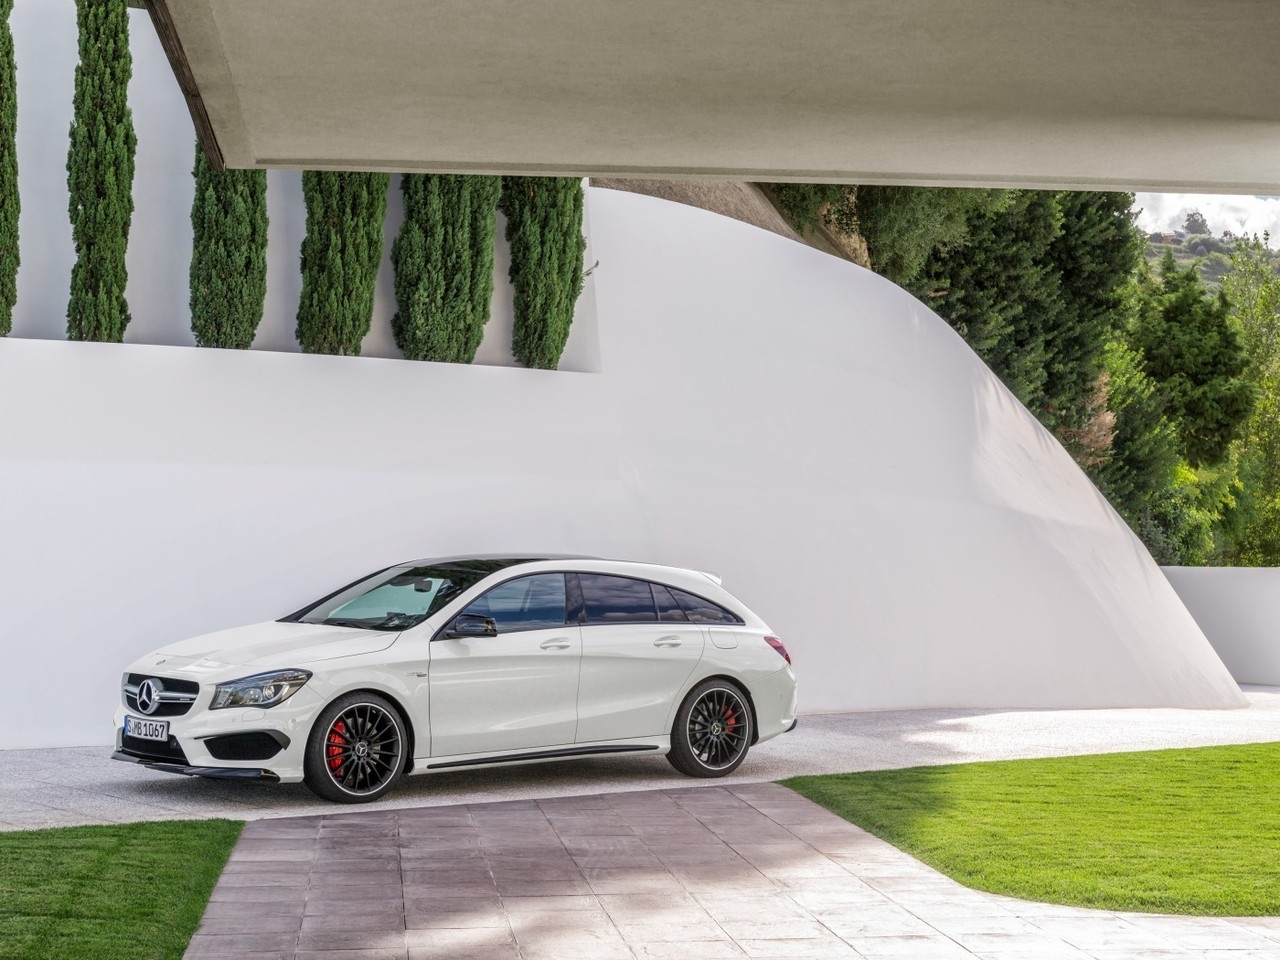 Mercedes CLA 45 AMG 2015 for 1280 x 960 resolution